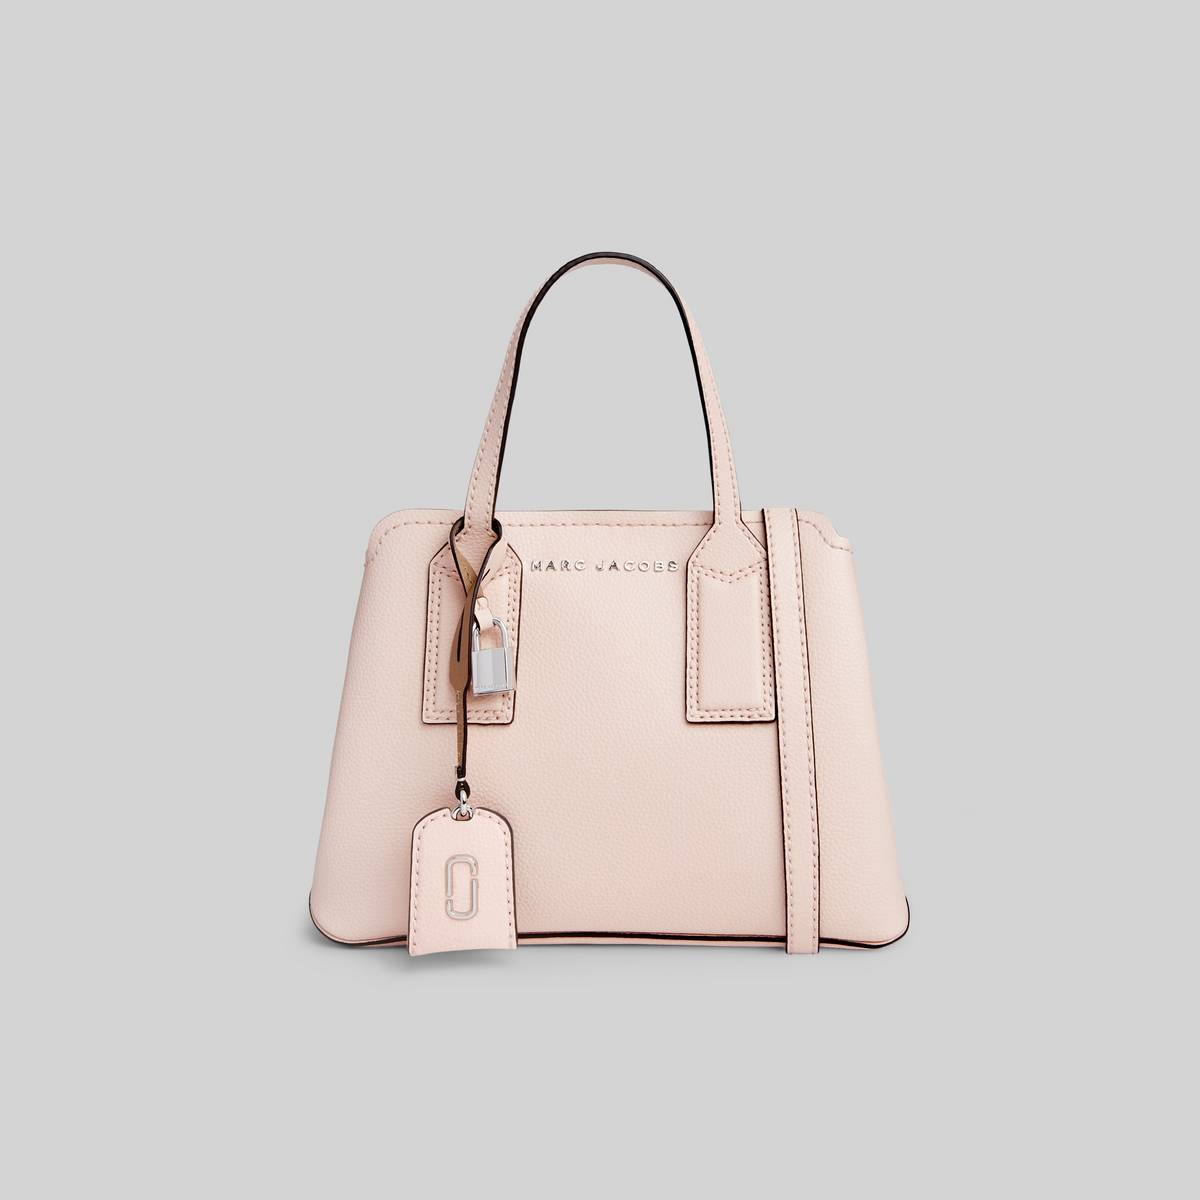 Leather tote with shoulder straps and 3 interior sections. | MARC JACOBS Women\\'s The Editor Crossbody Bag in Pearl Pink